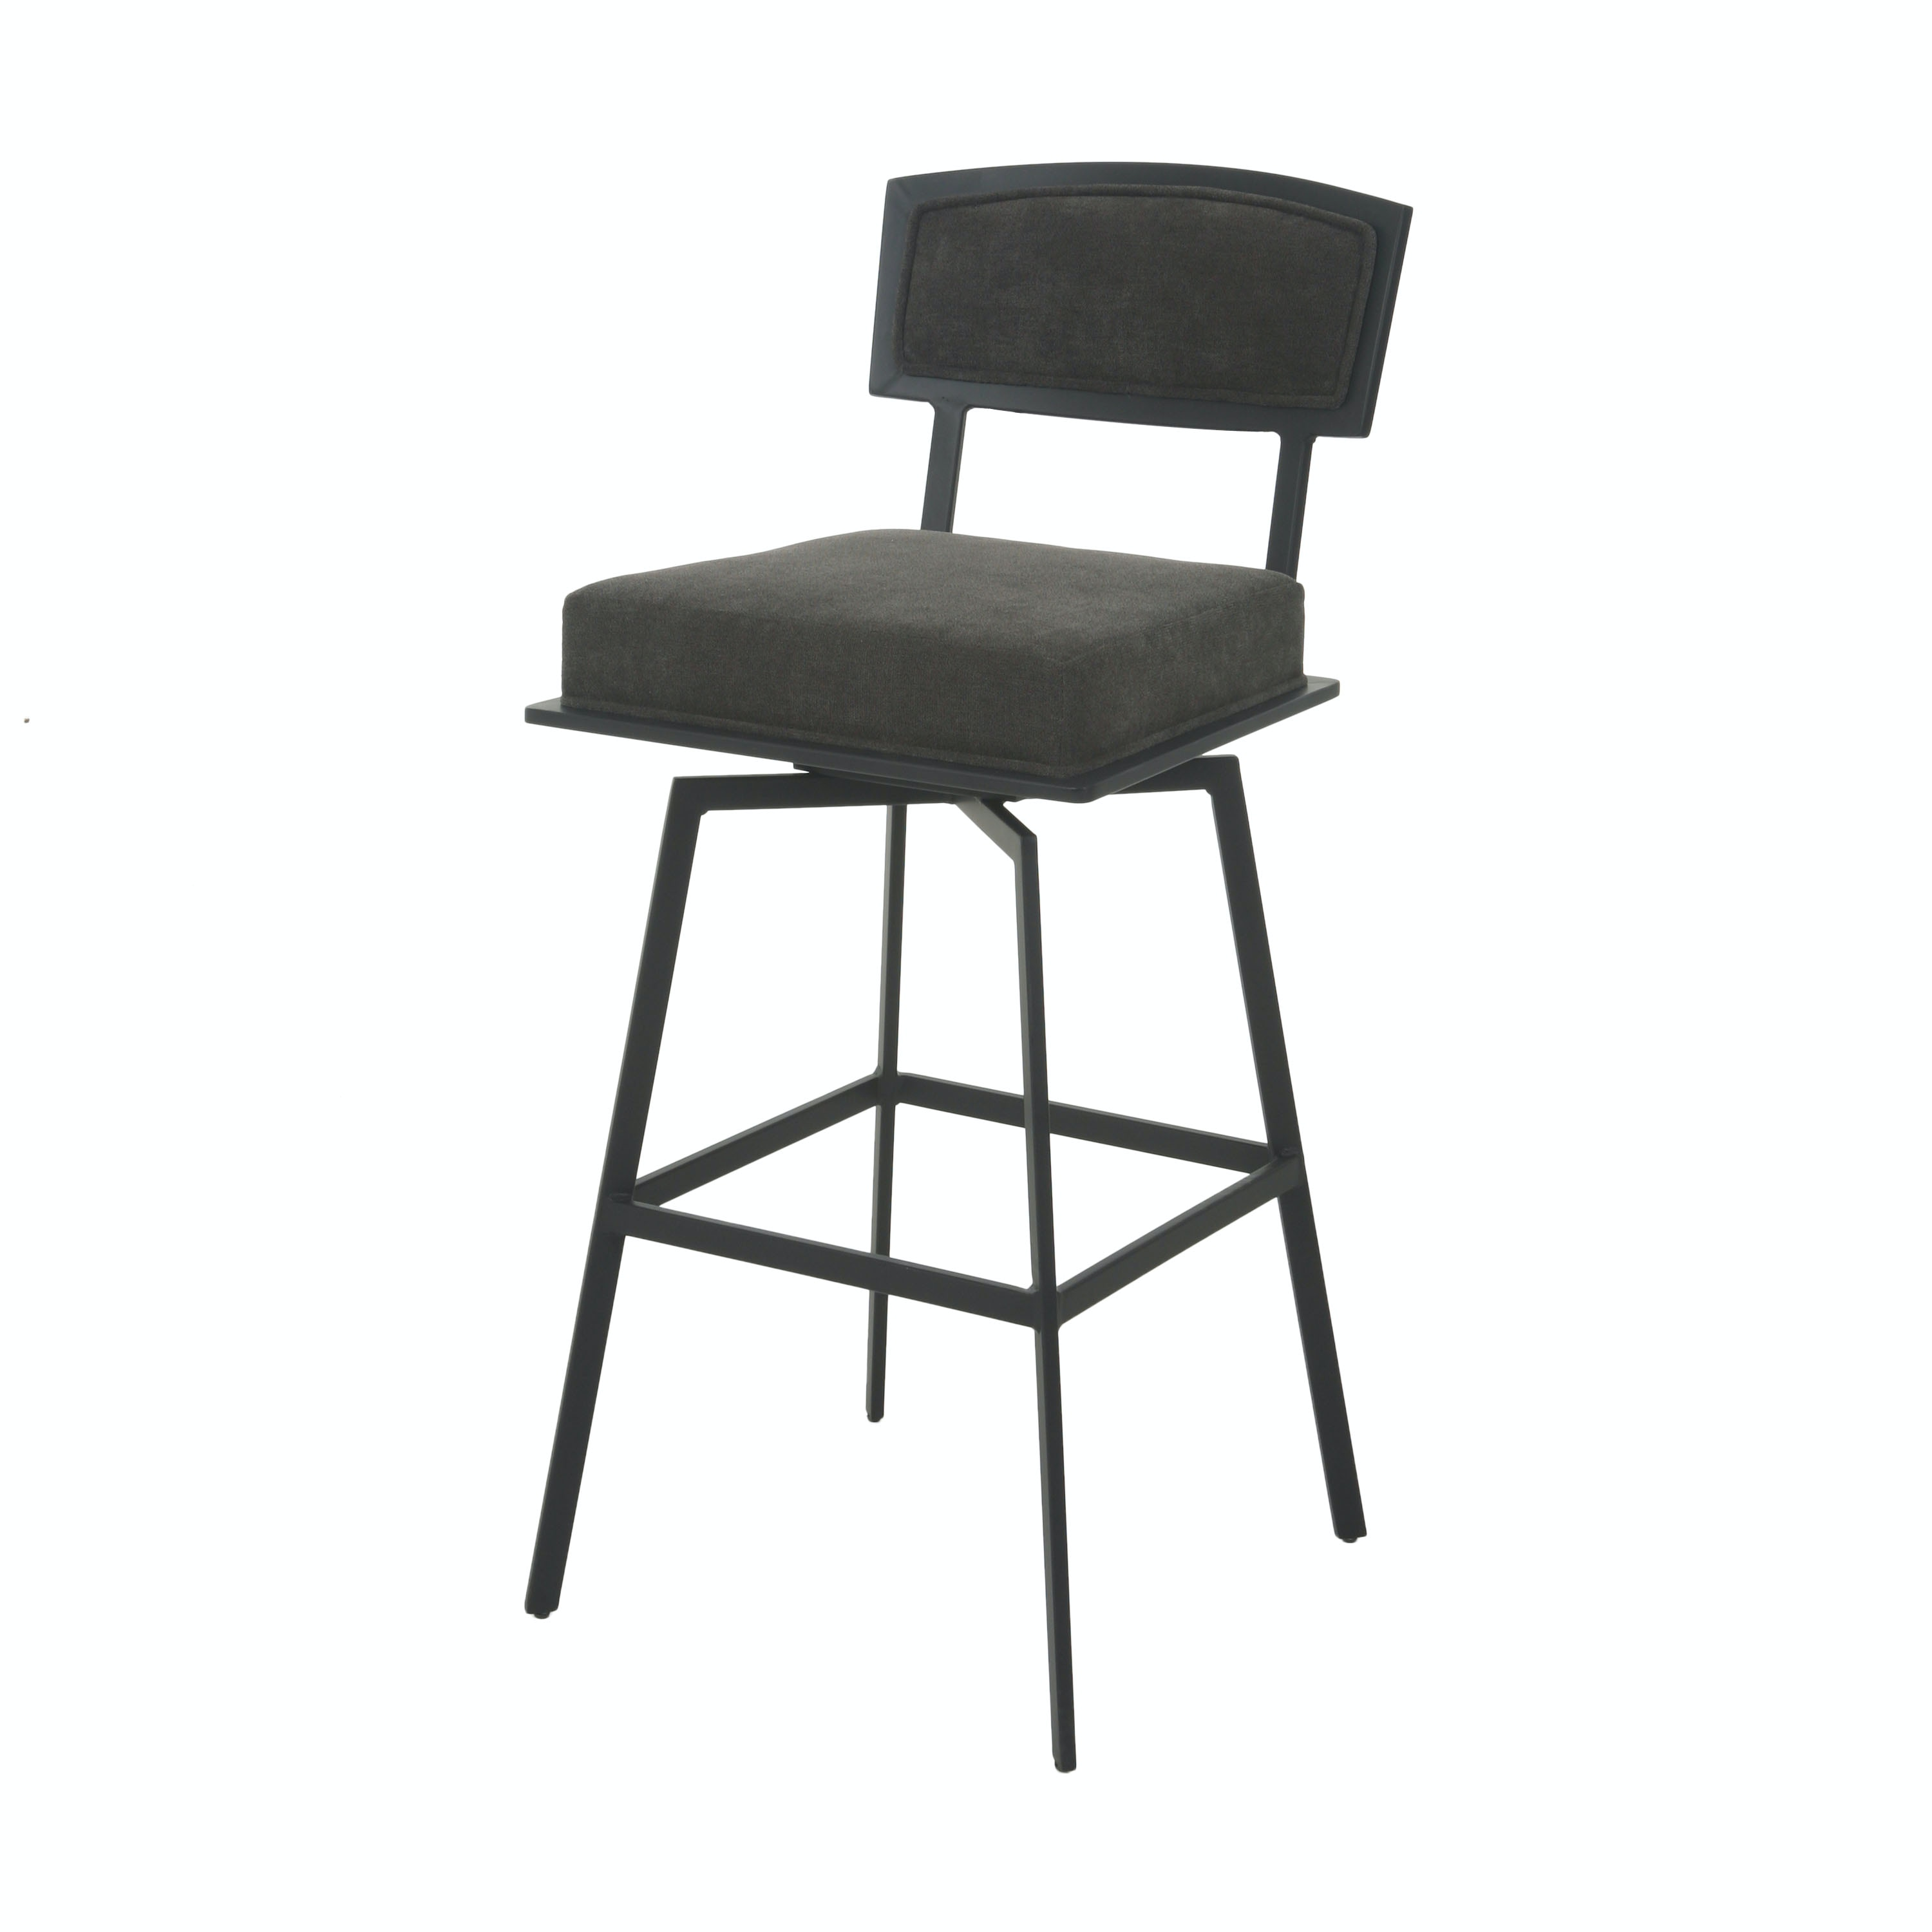 Pastel Furniture Ethan Swivel Barstool ET 219 SK 191 26